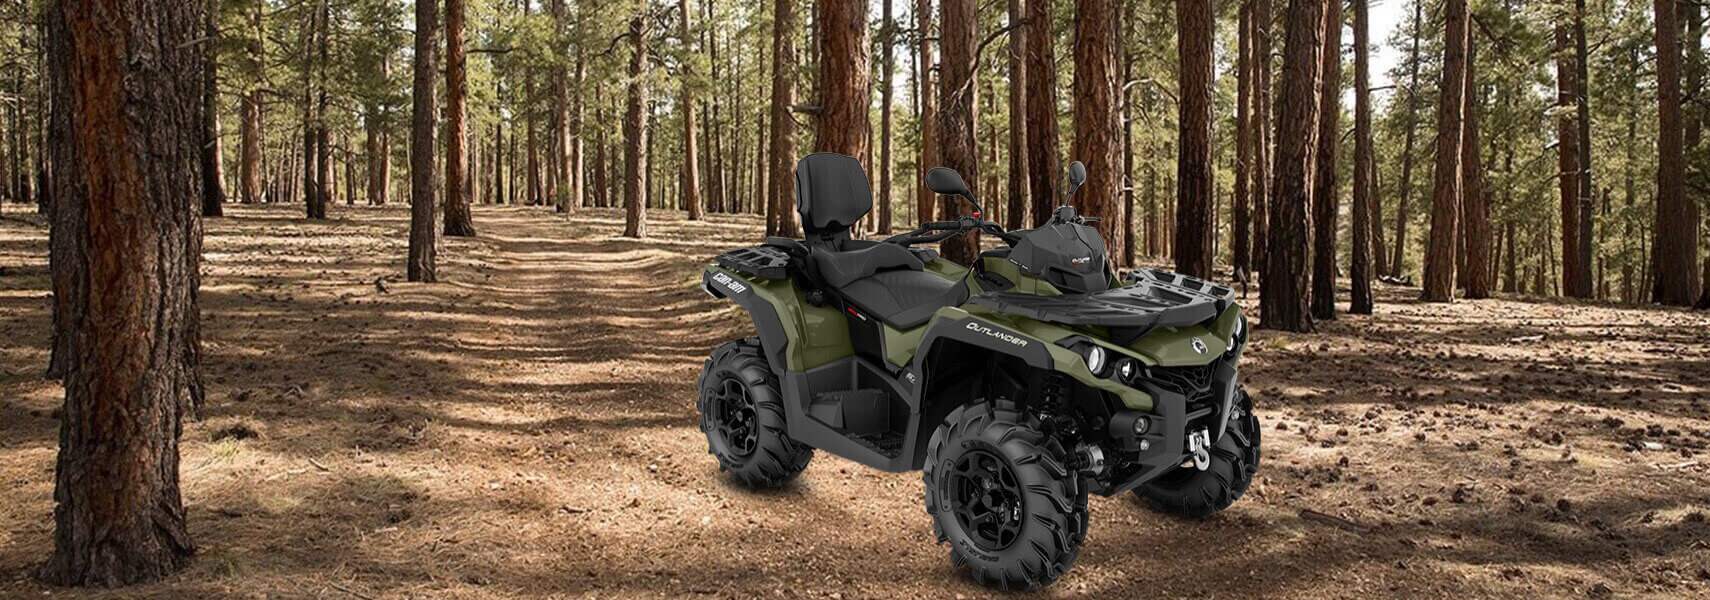 Can-Am ATV - 2020 OUTLANDER MAX PRO + 570 T